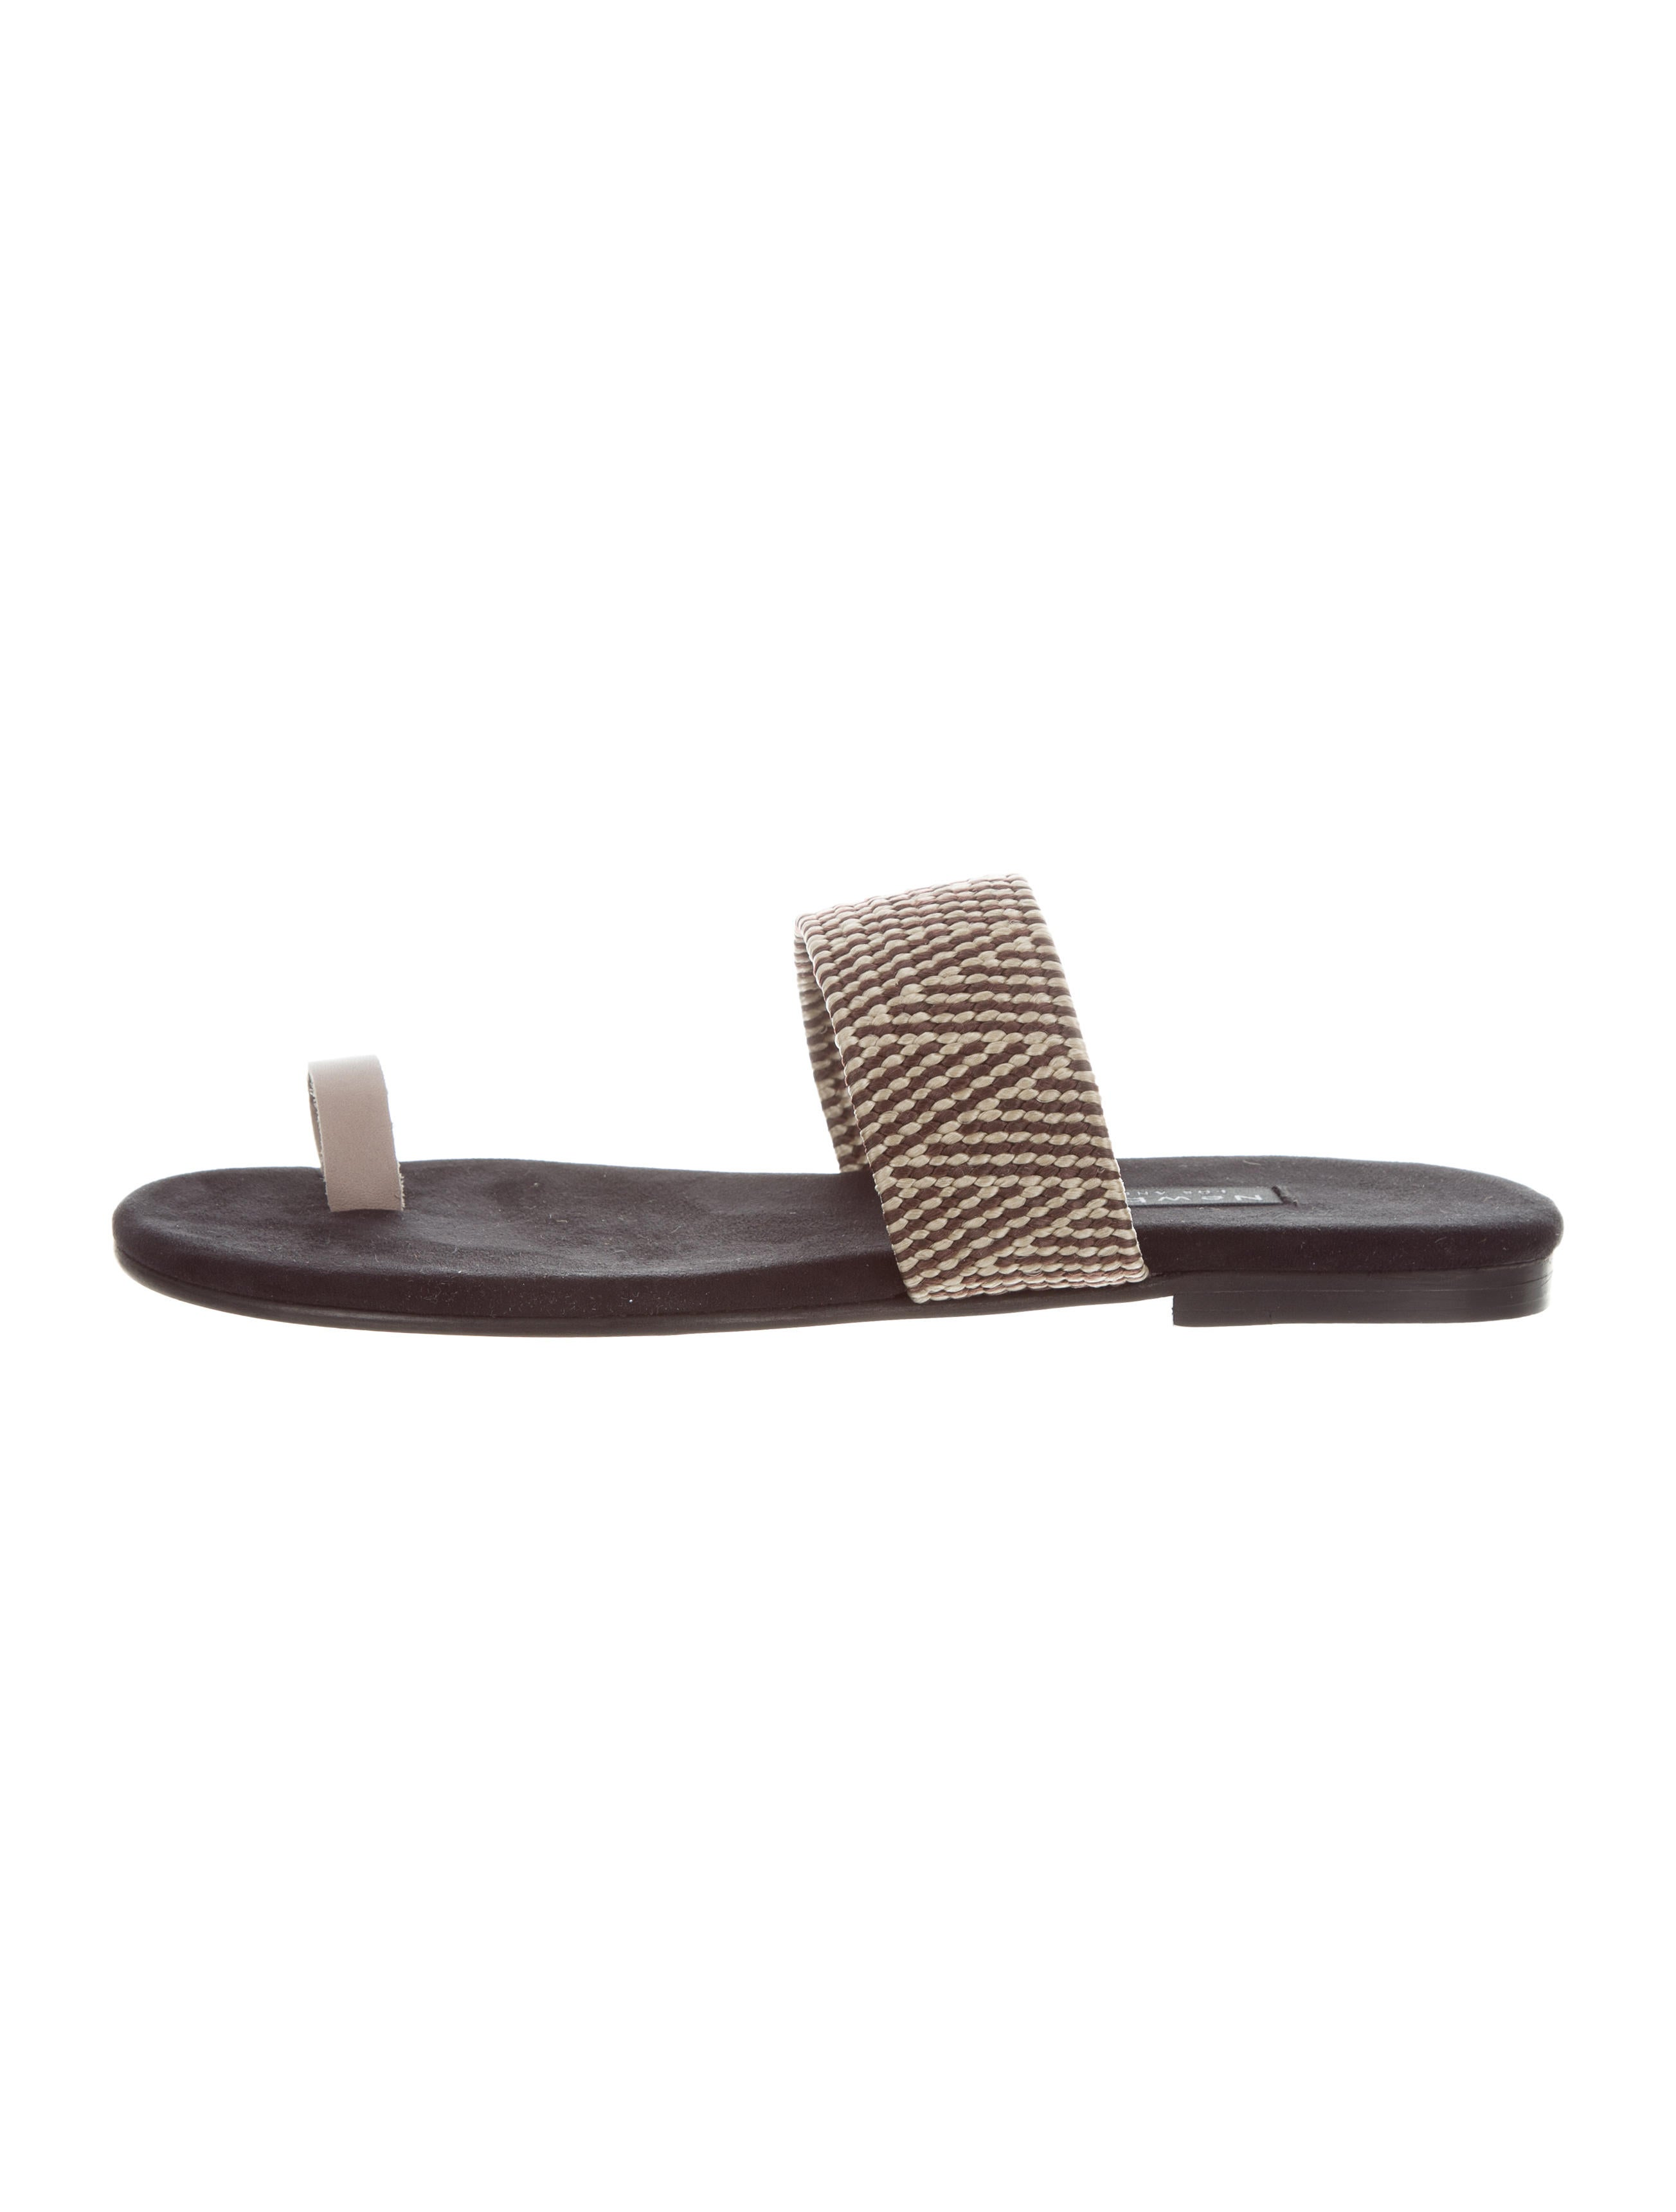 NewbarK Roma V Slide Sandals w/ Tags free shipping big discount free shipping outlet locations WRzGkWgiQR